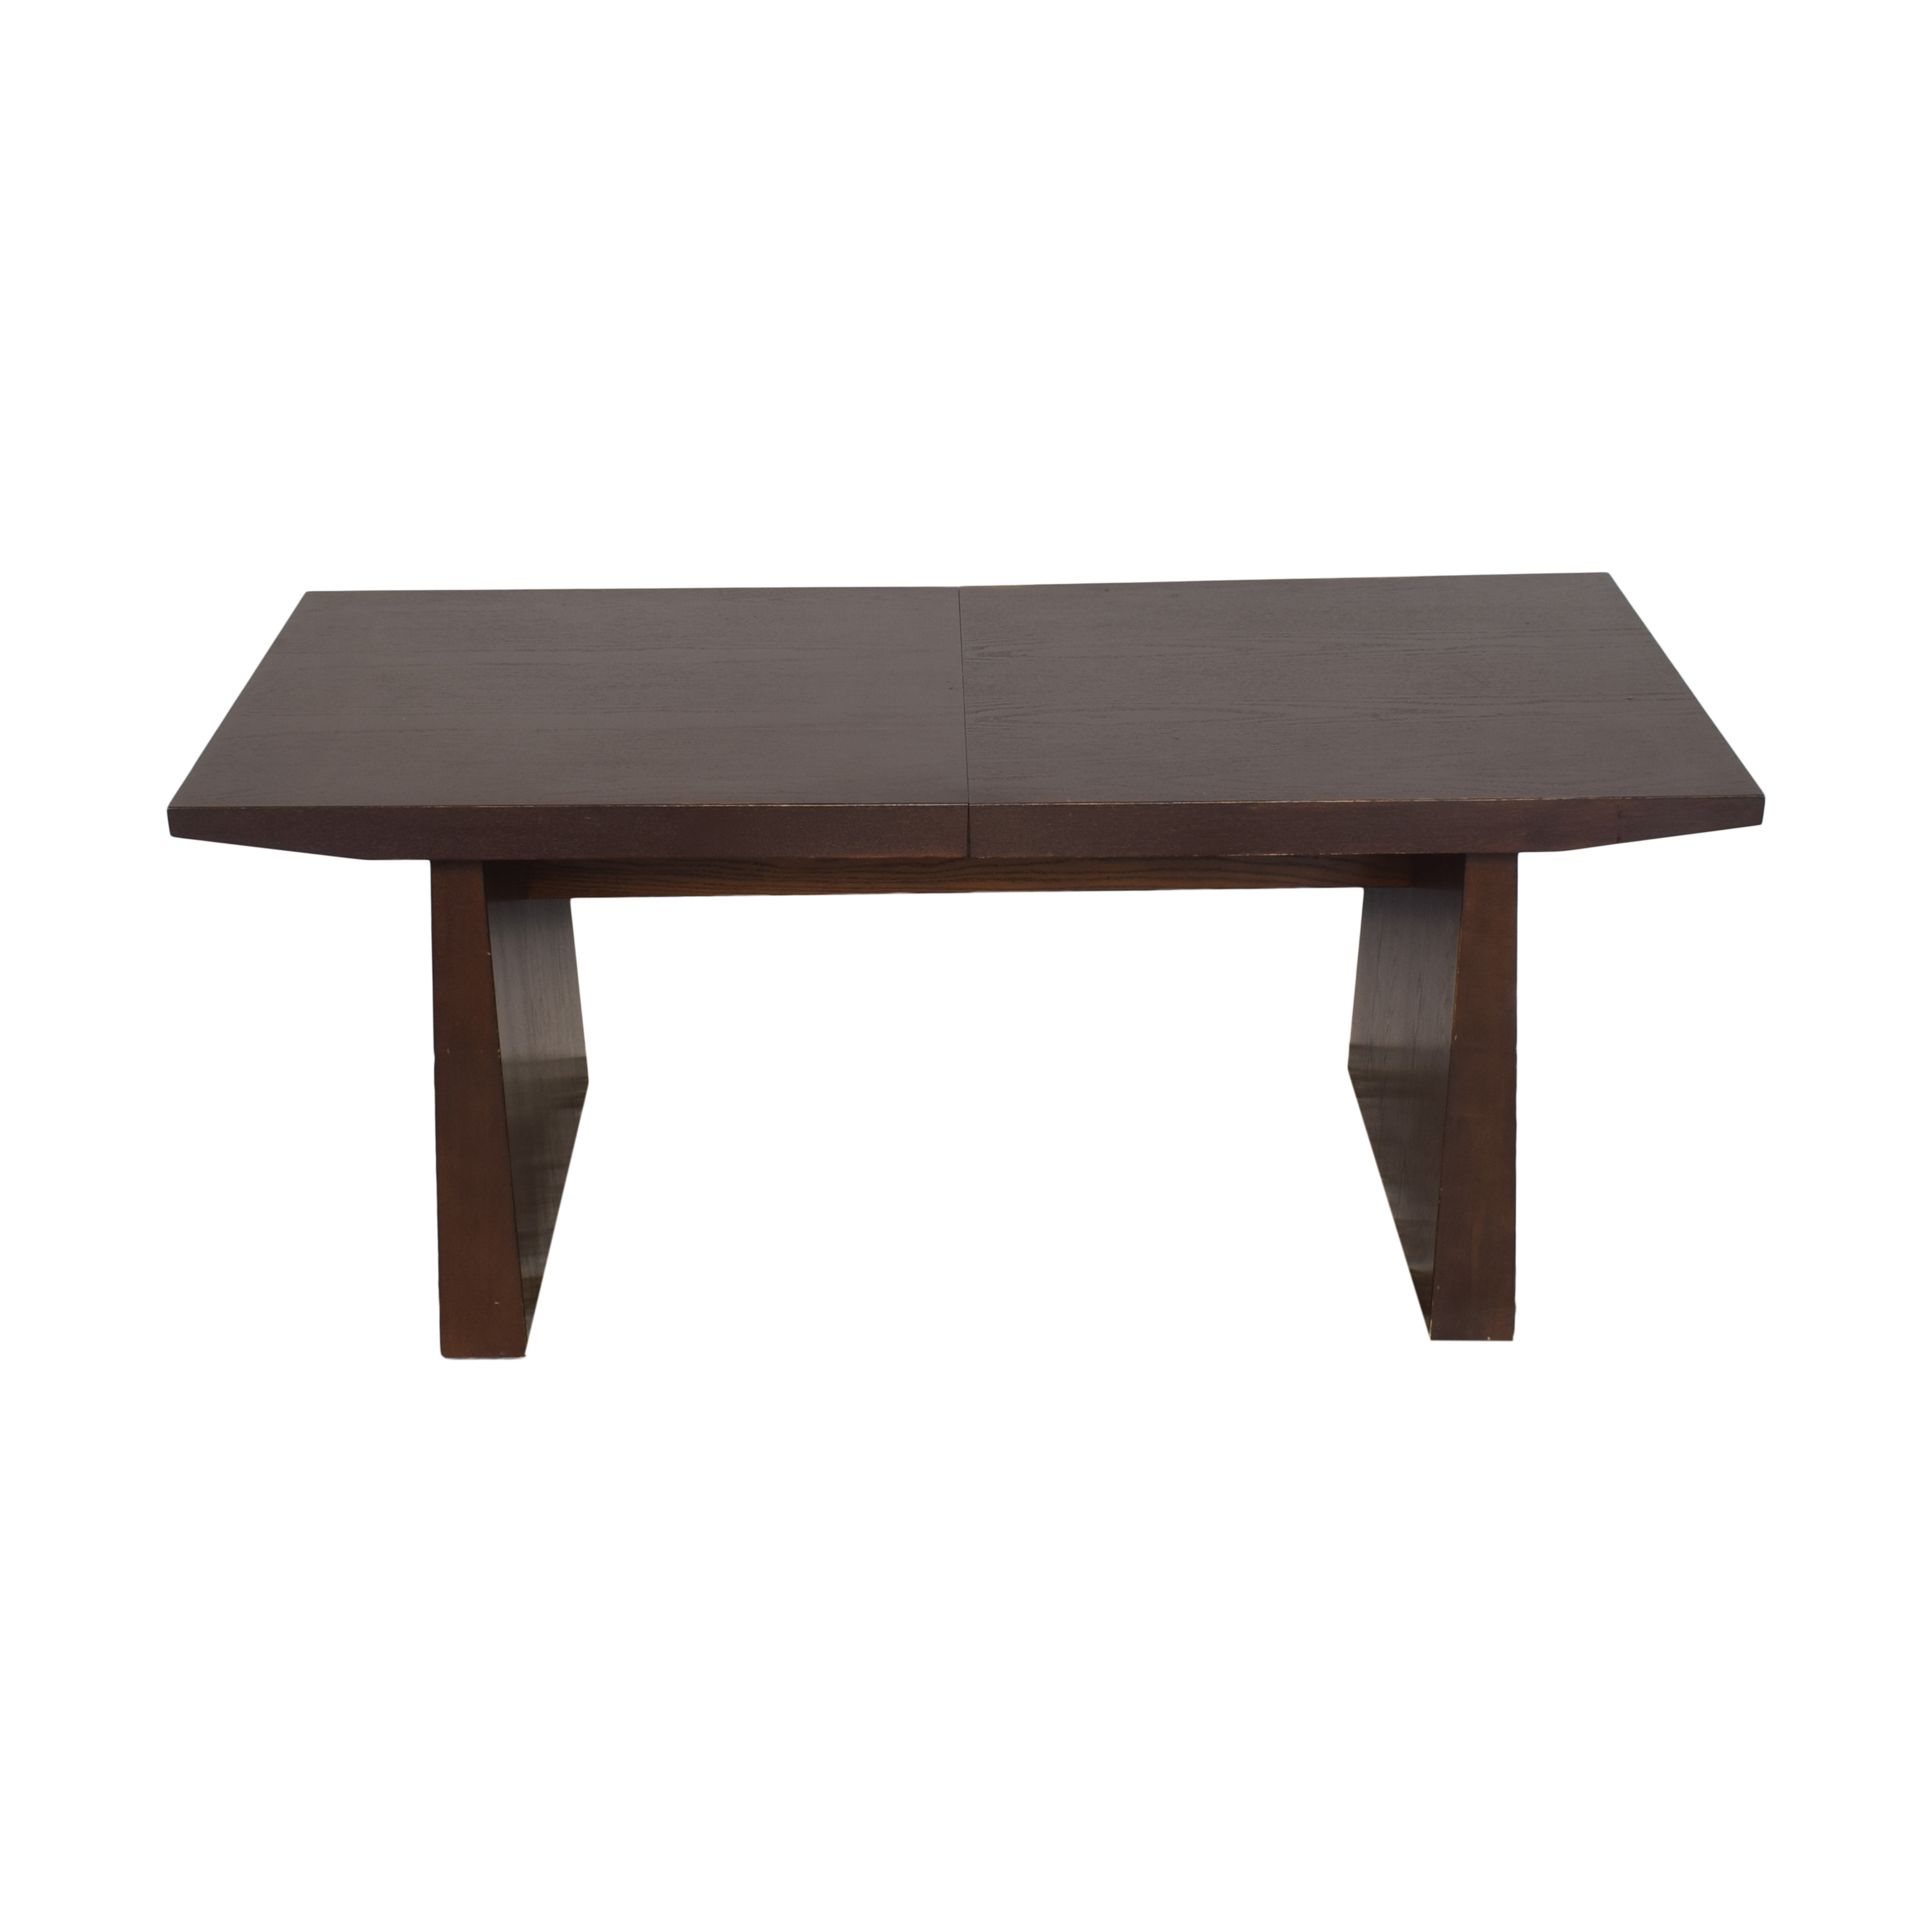 Overstock Overstock Hida Dining Table for sale